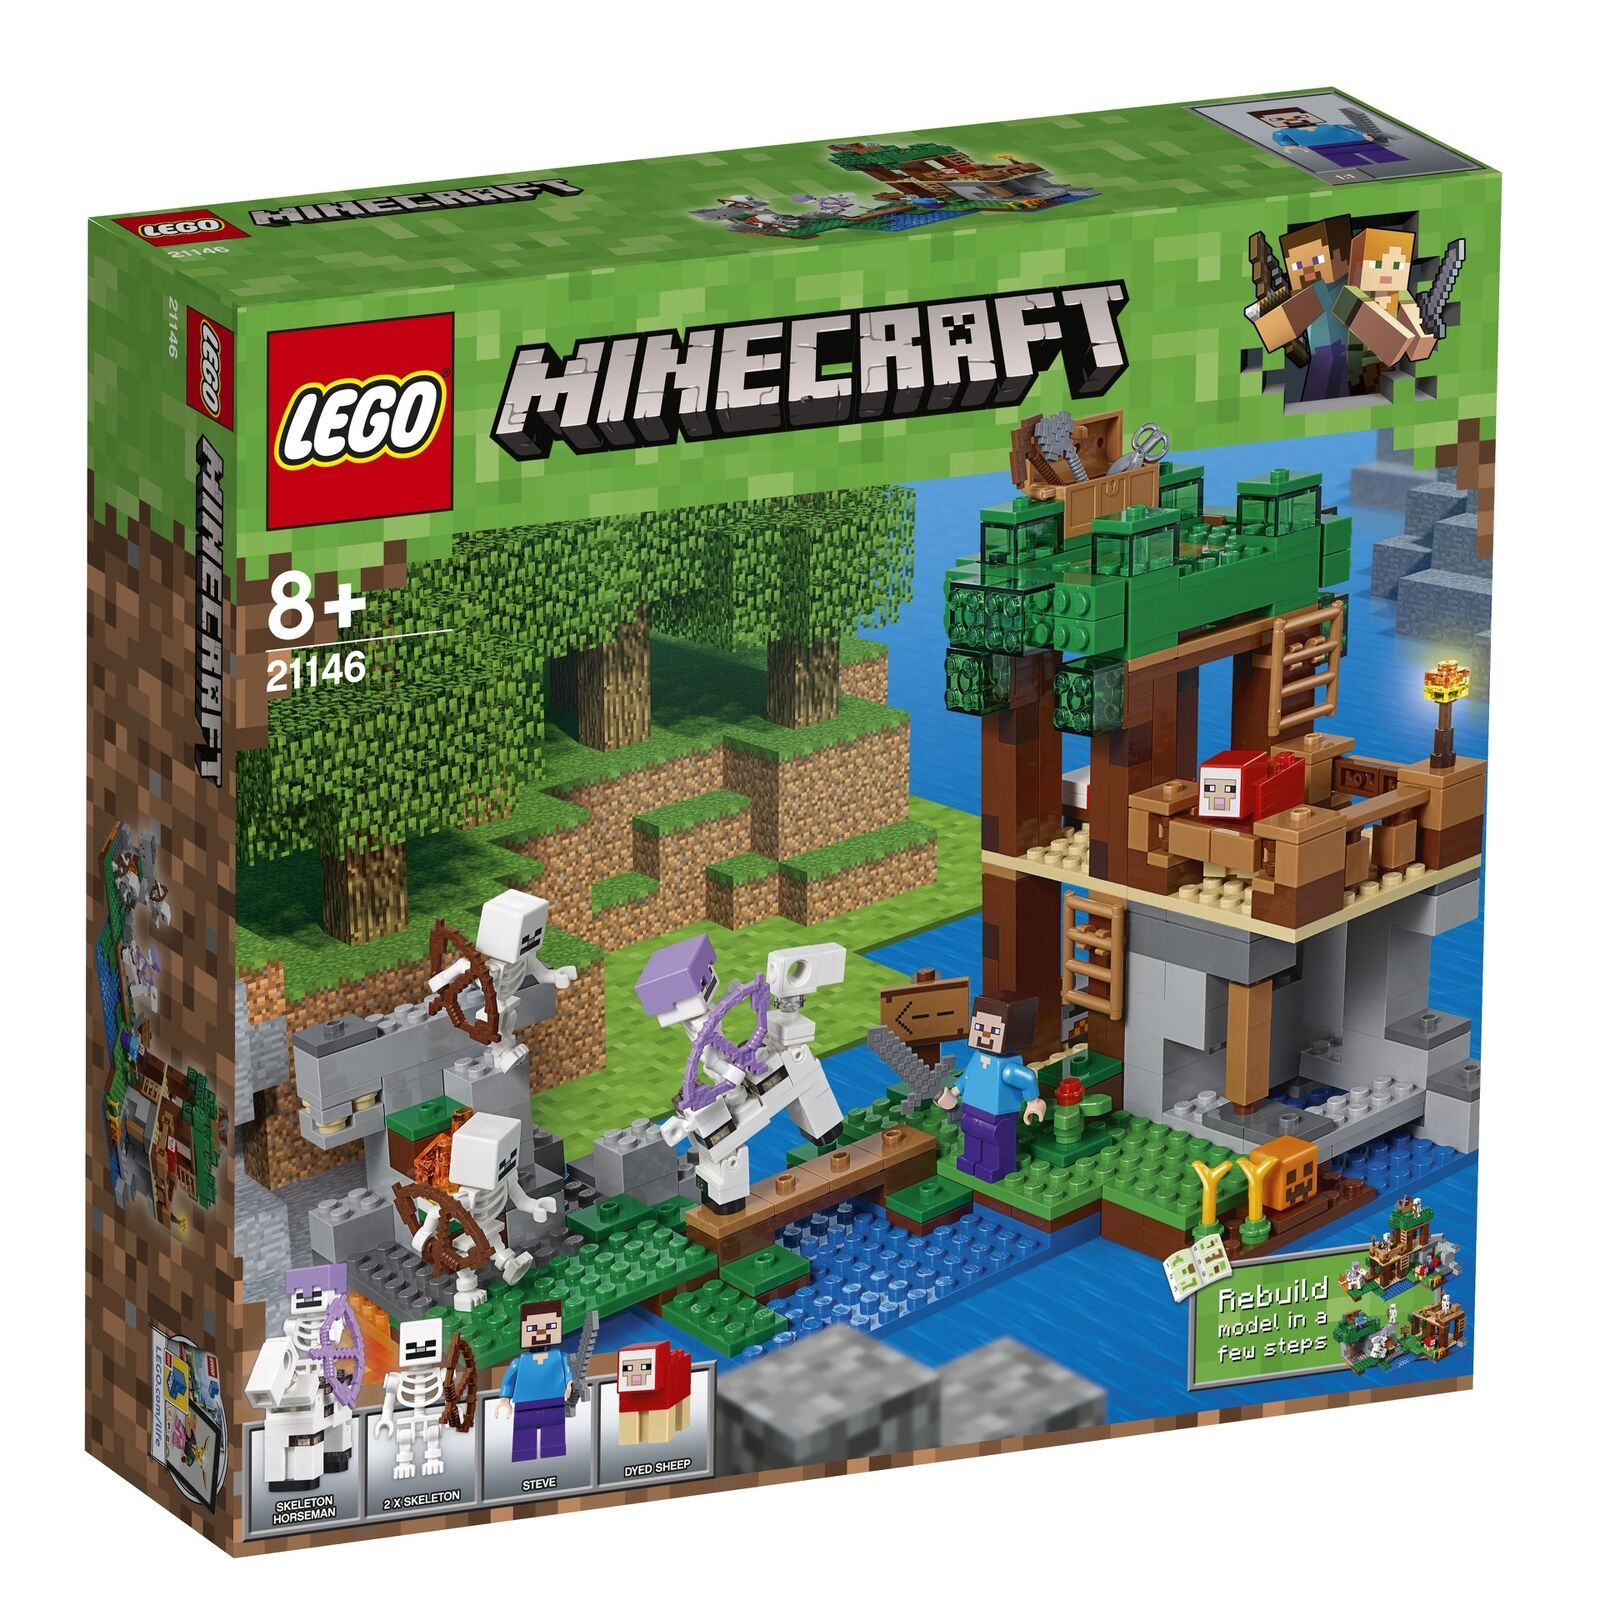 Lego Minecraft 21146 The Skeletons Come New And In Original Box Ebay